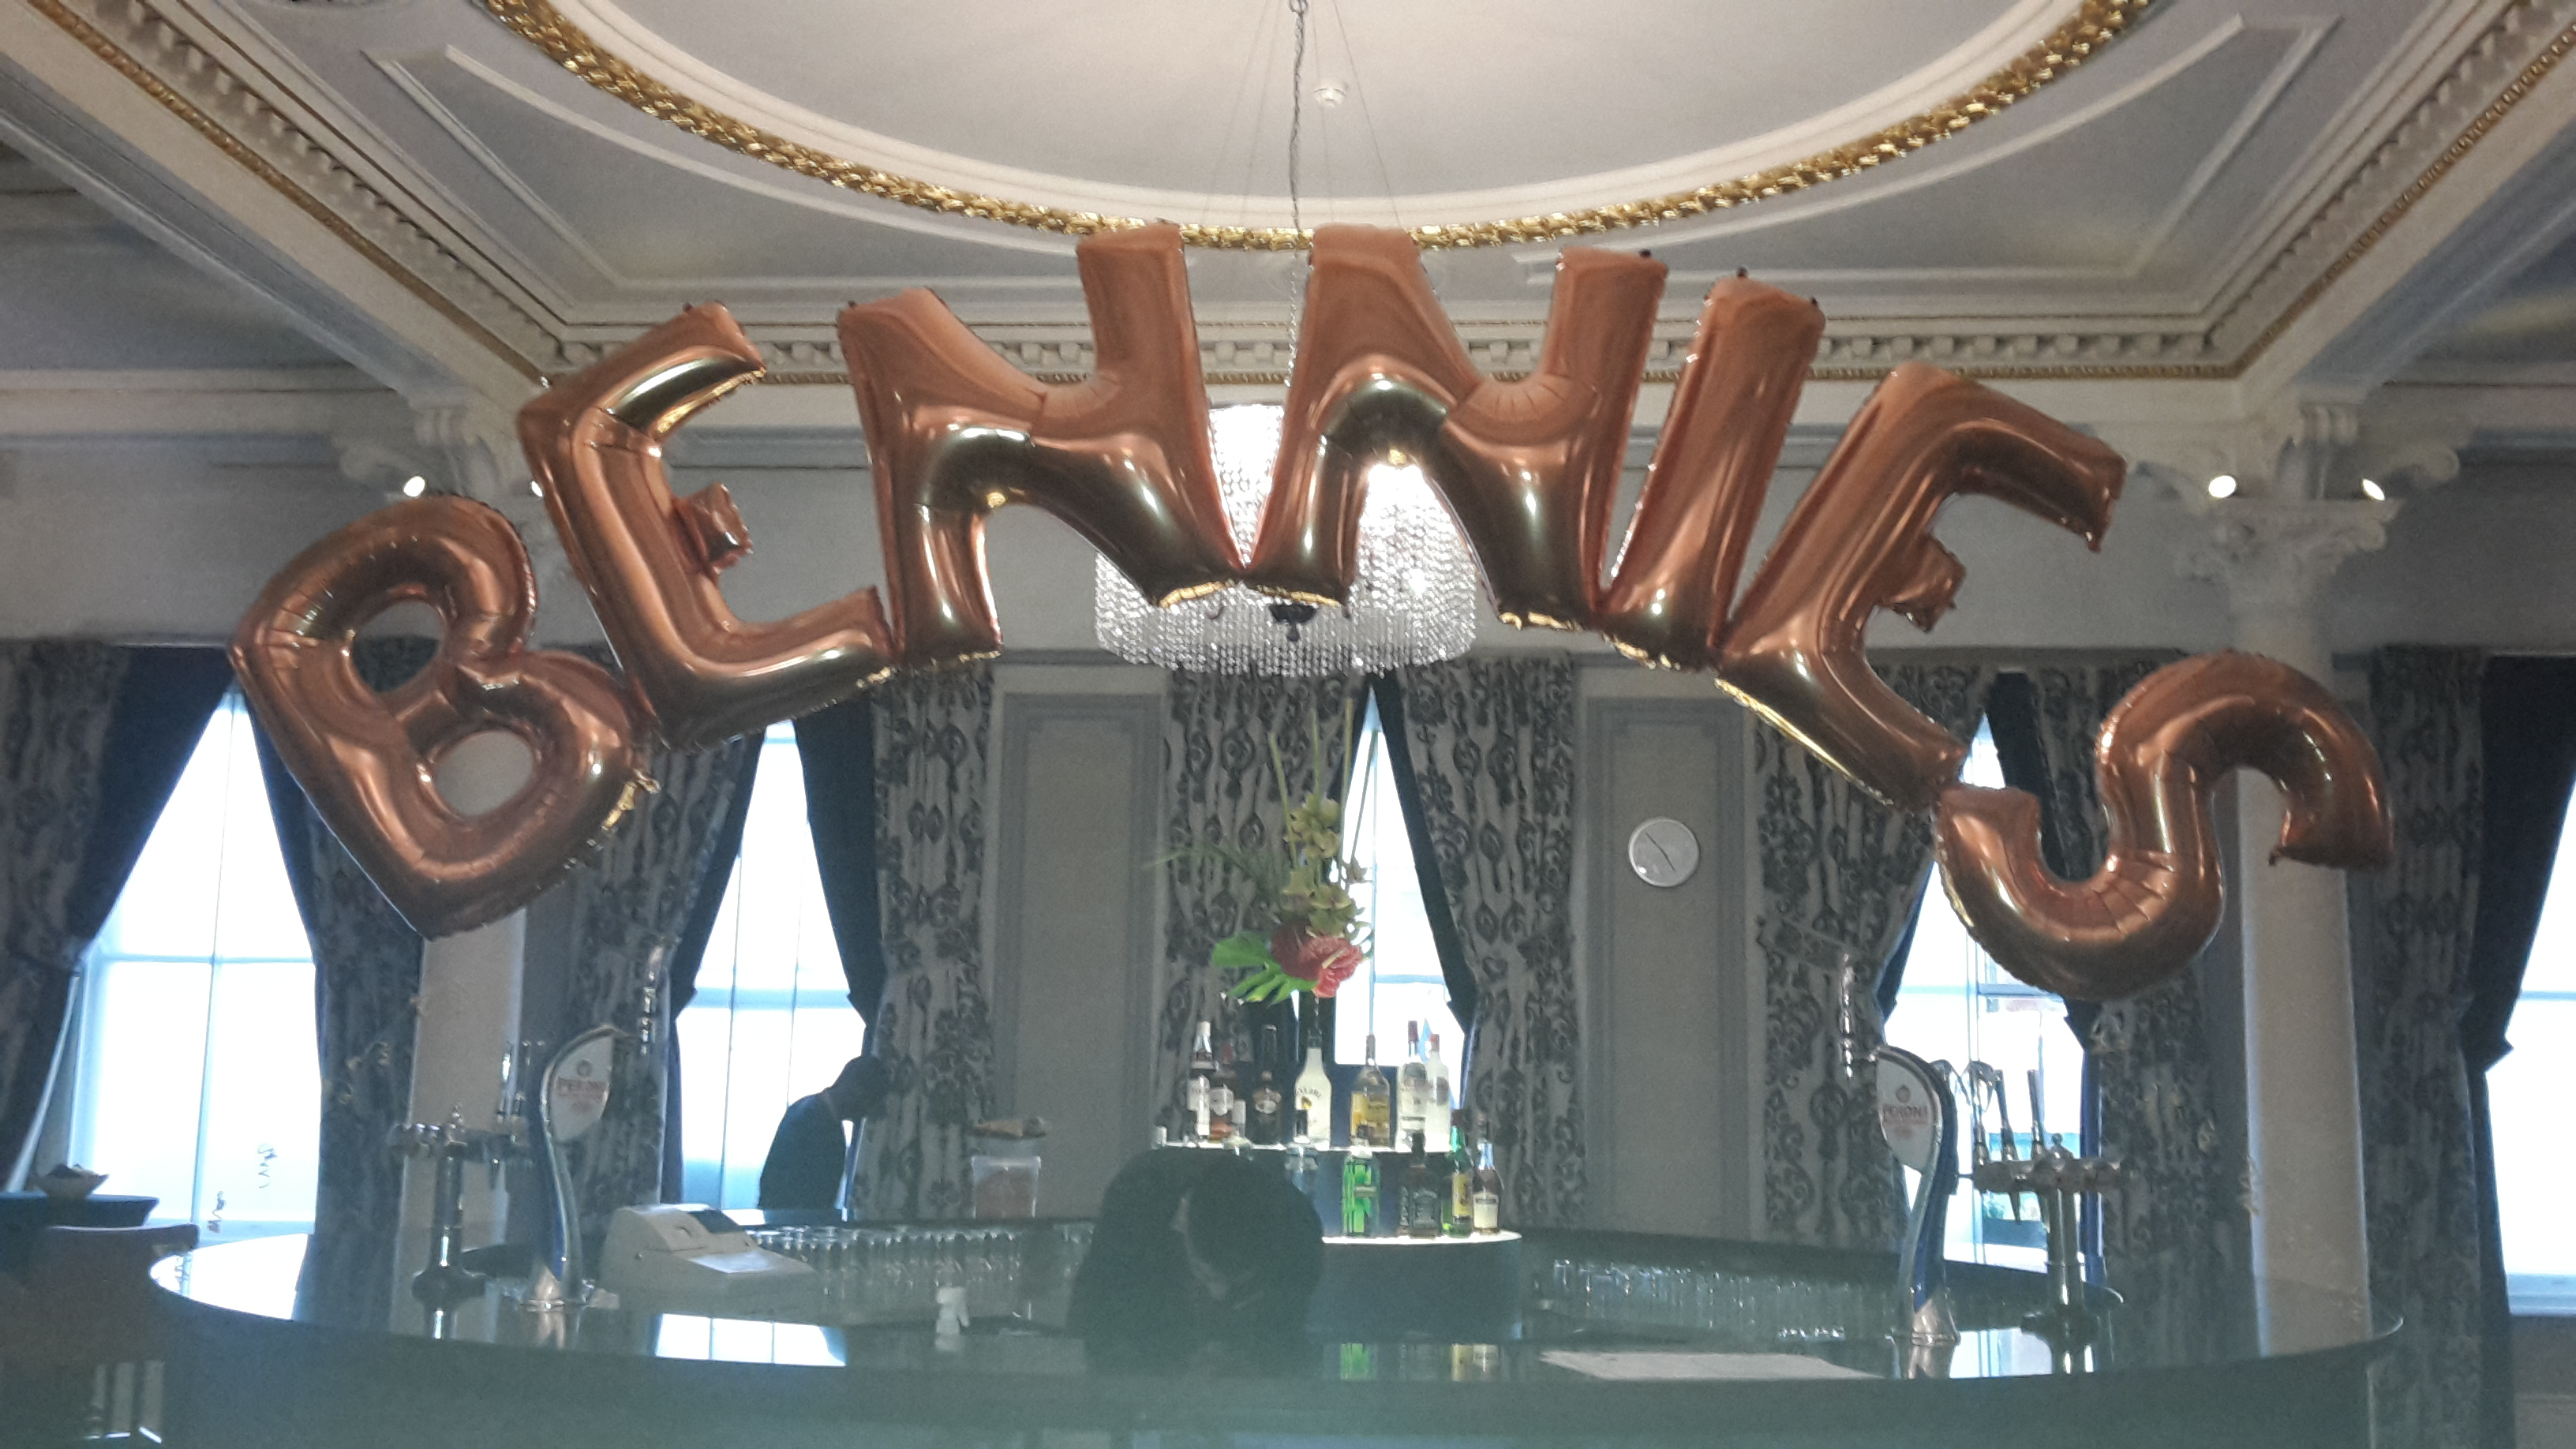 Balloon letter Arch over a bar